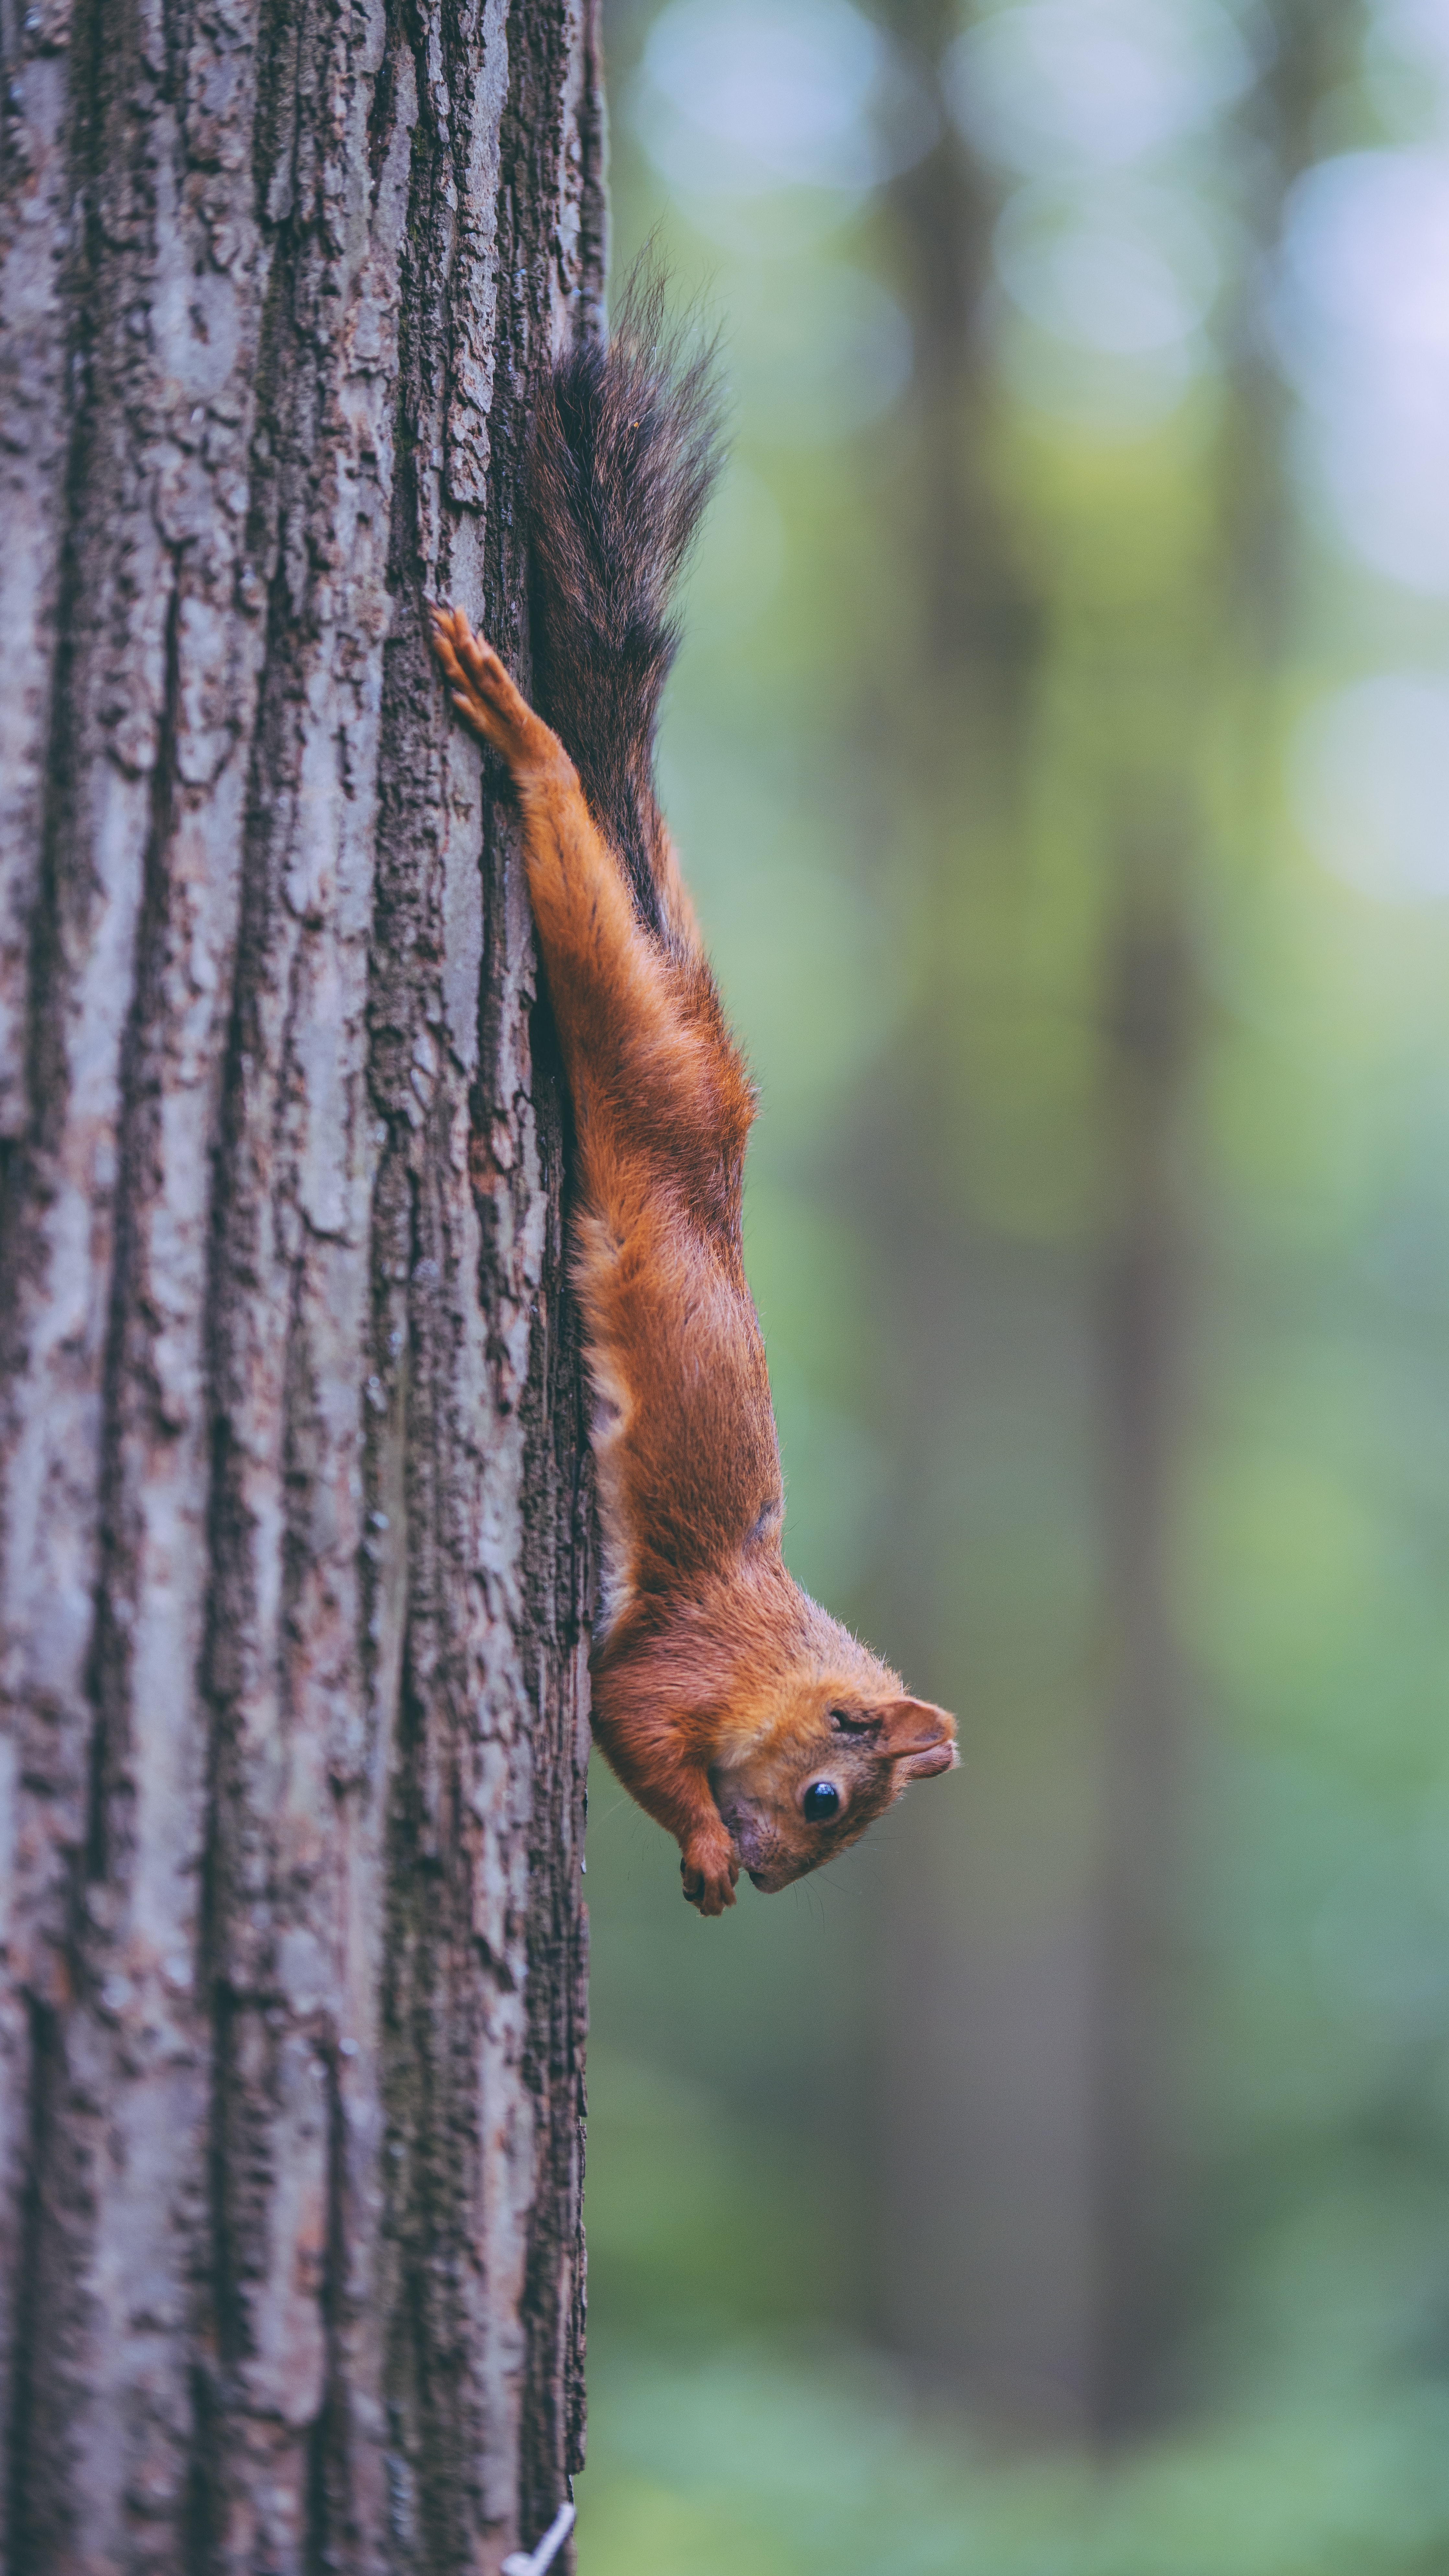 77722 download wallpaper Animals, Squirrel, Animal, Rodent, Funny, Wood, Tree screensavers and pictures for free